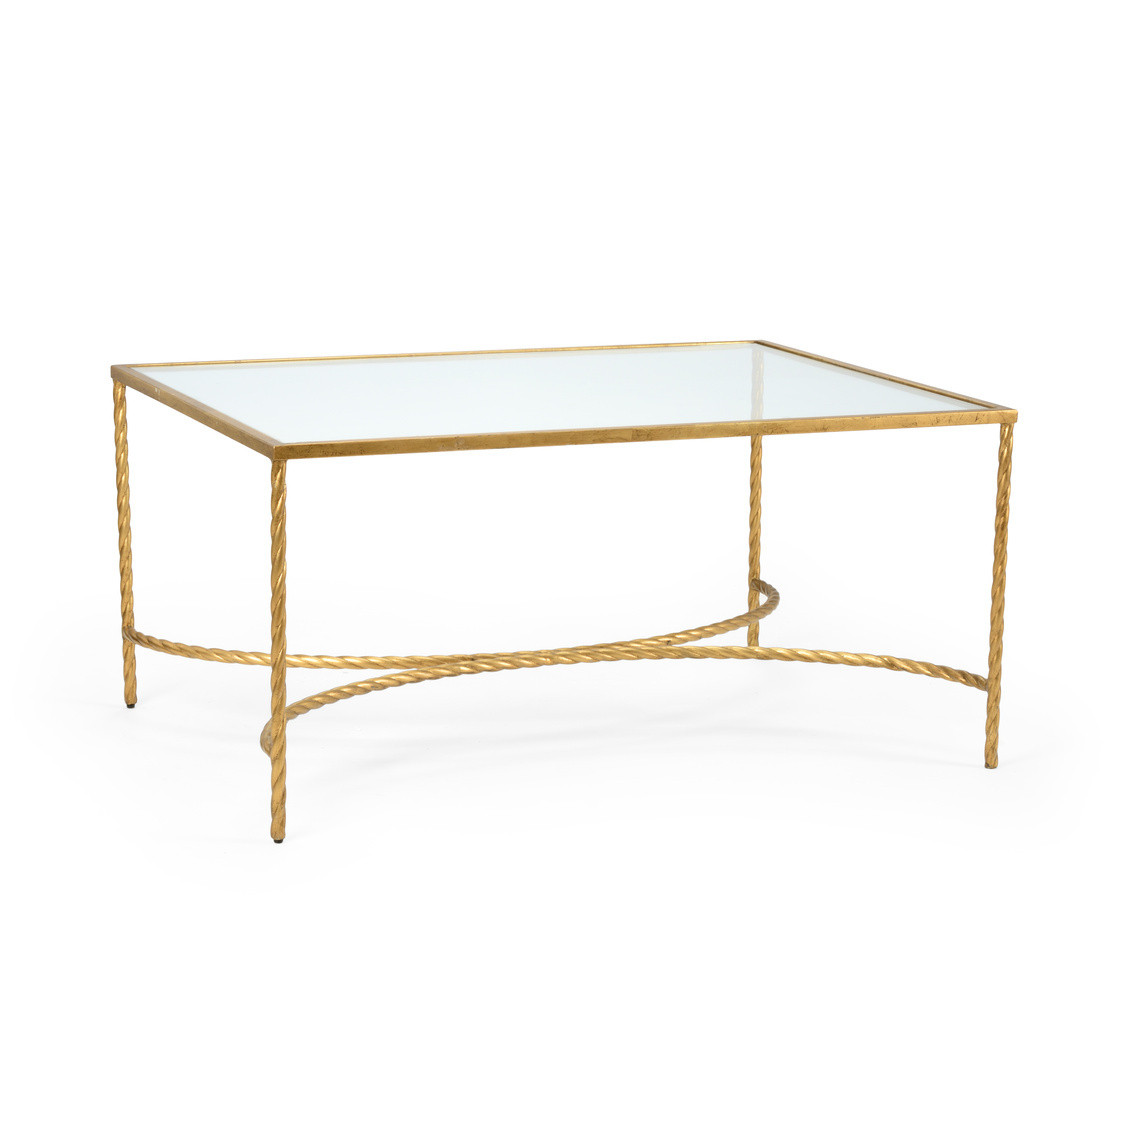 greek gold rope coffee table side accent console tables full from belleand leather dining room chairs trestle west elm marble mirrored set small round with screw legs square metal